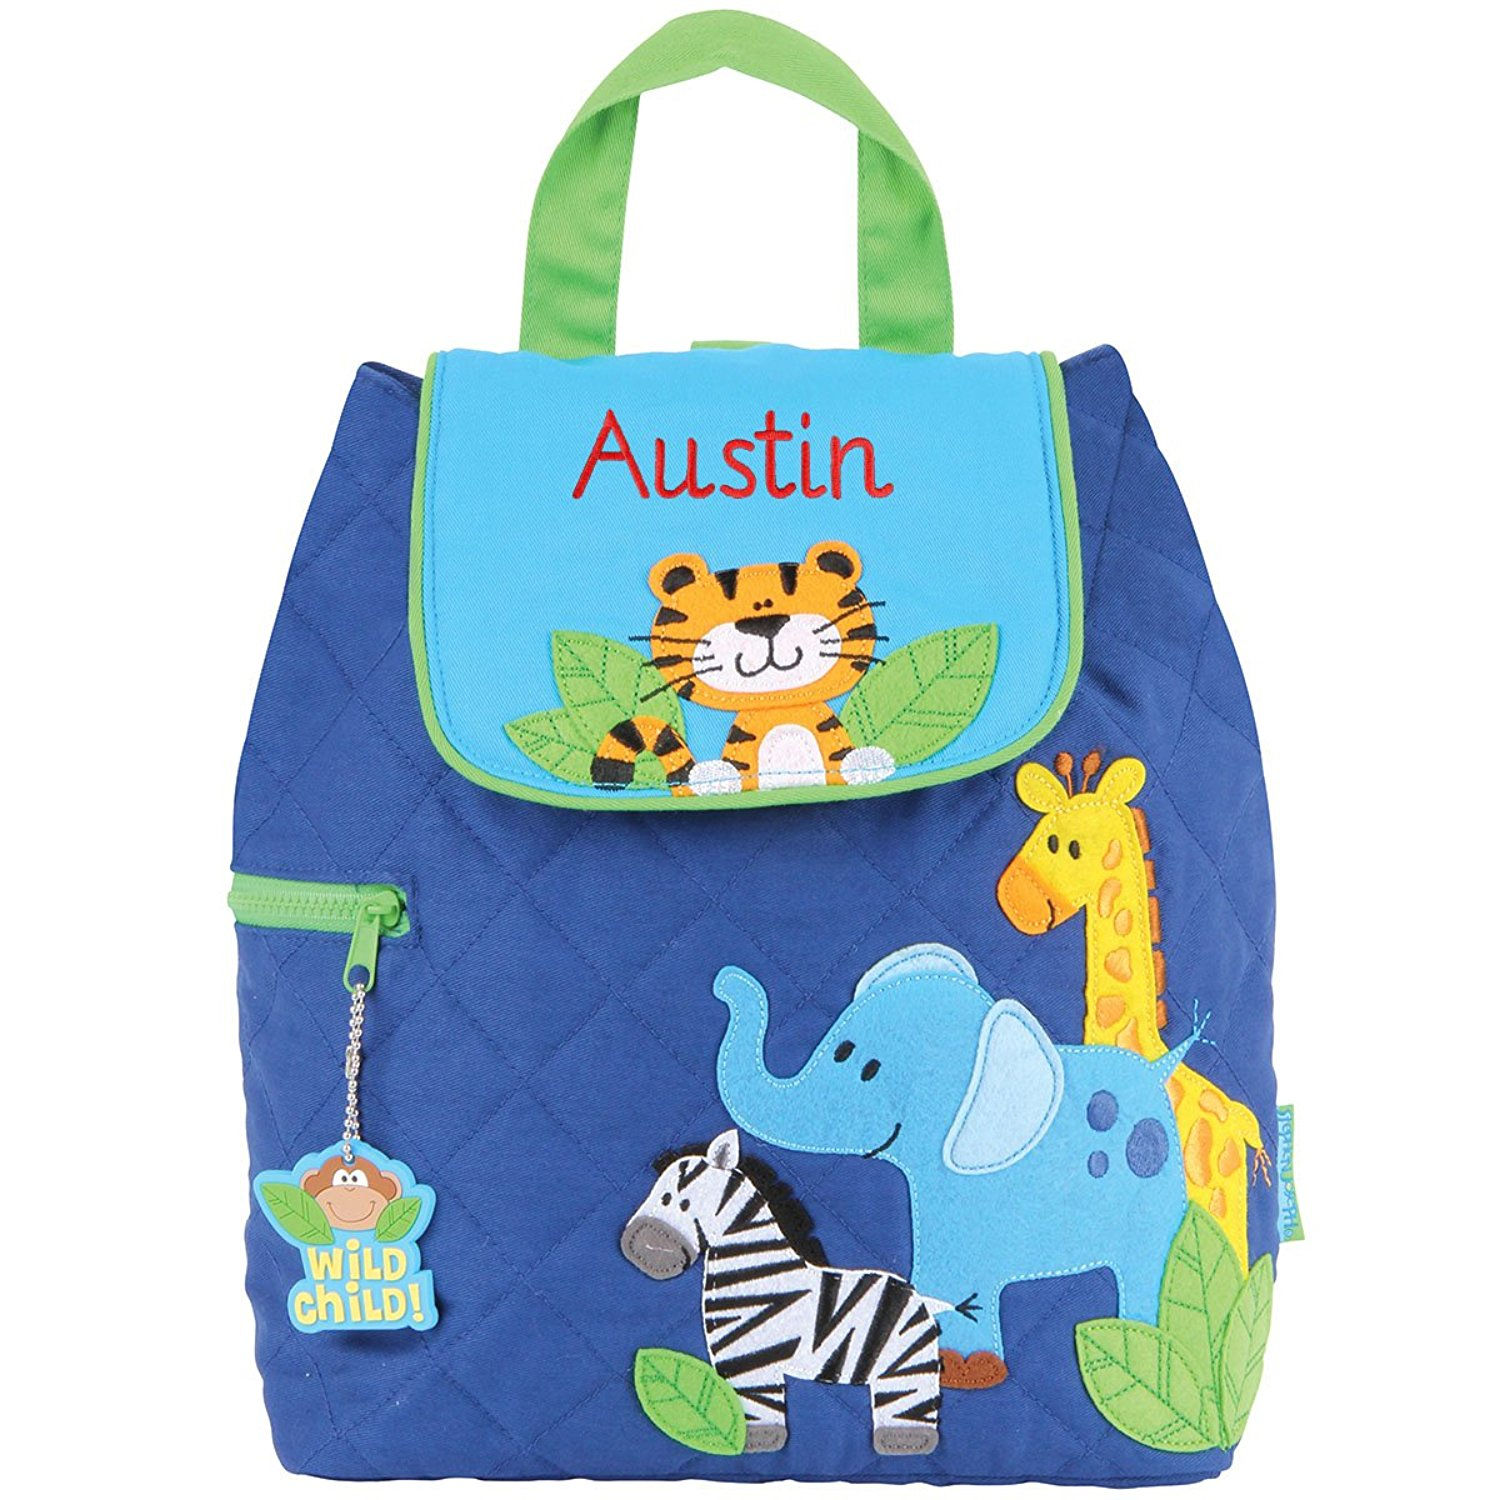 5d5958df1ca3 Buy Personalized Stephen Joseph Go Go Boy Zoo Backpack with ...